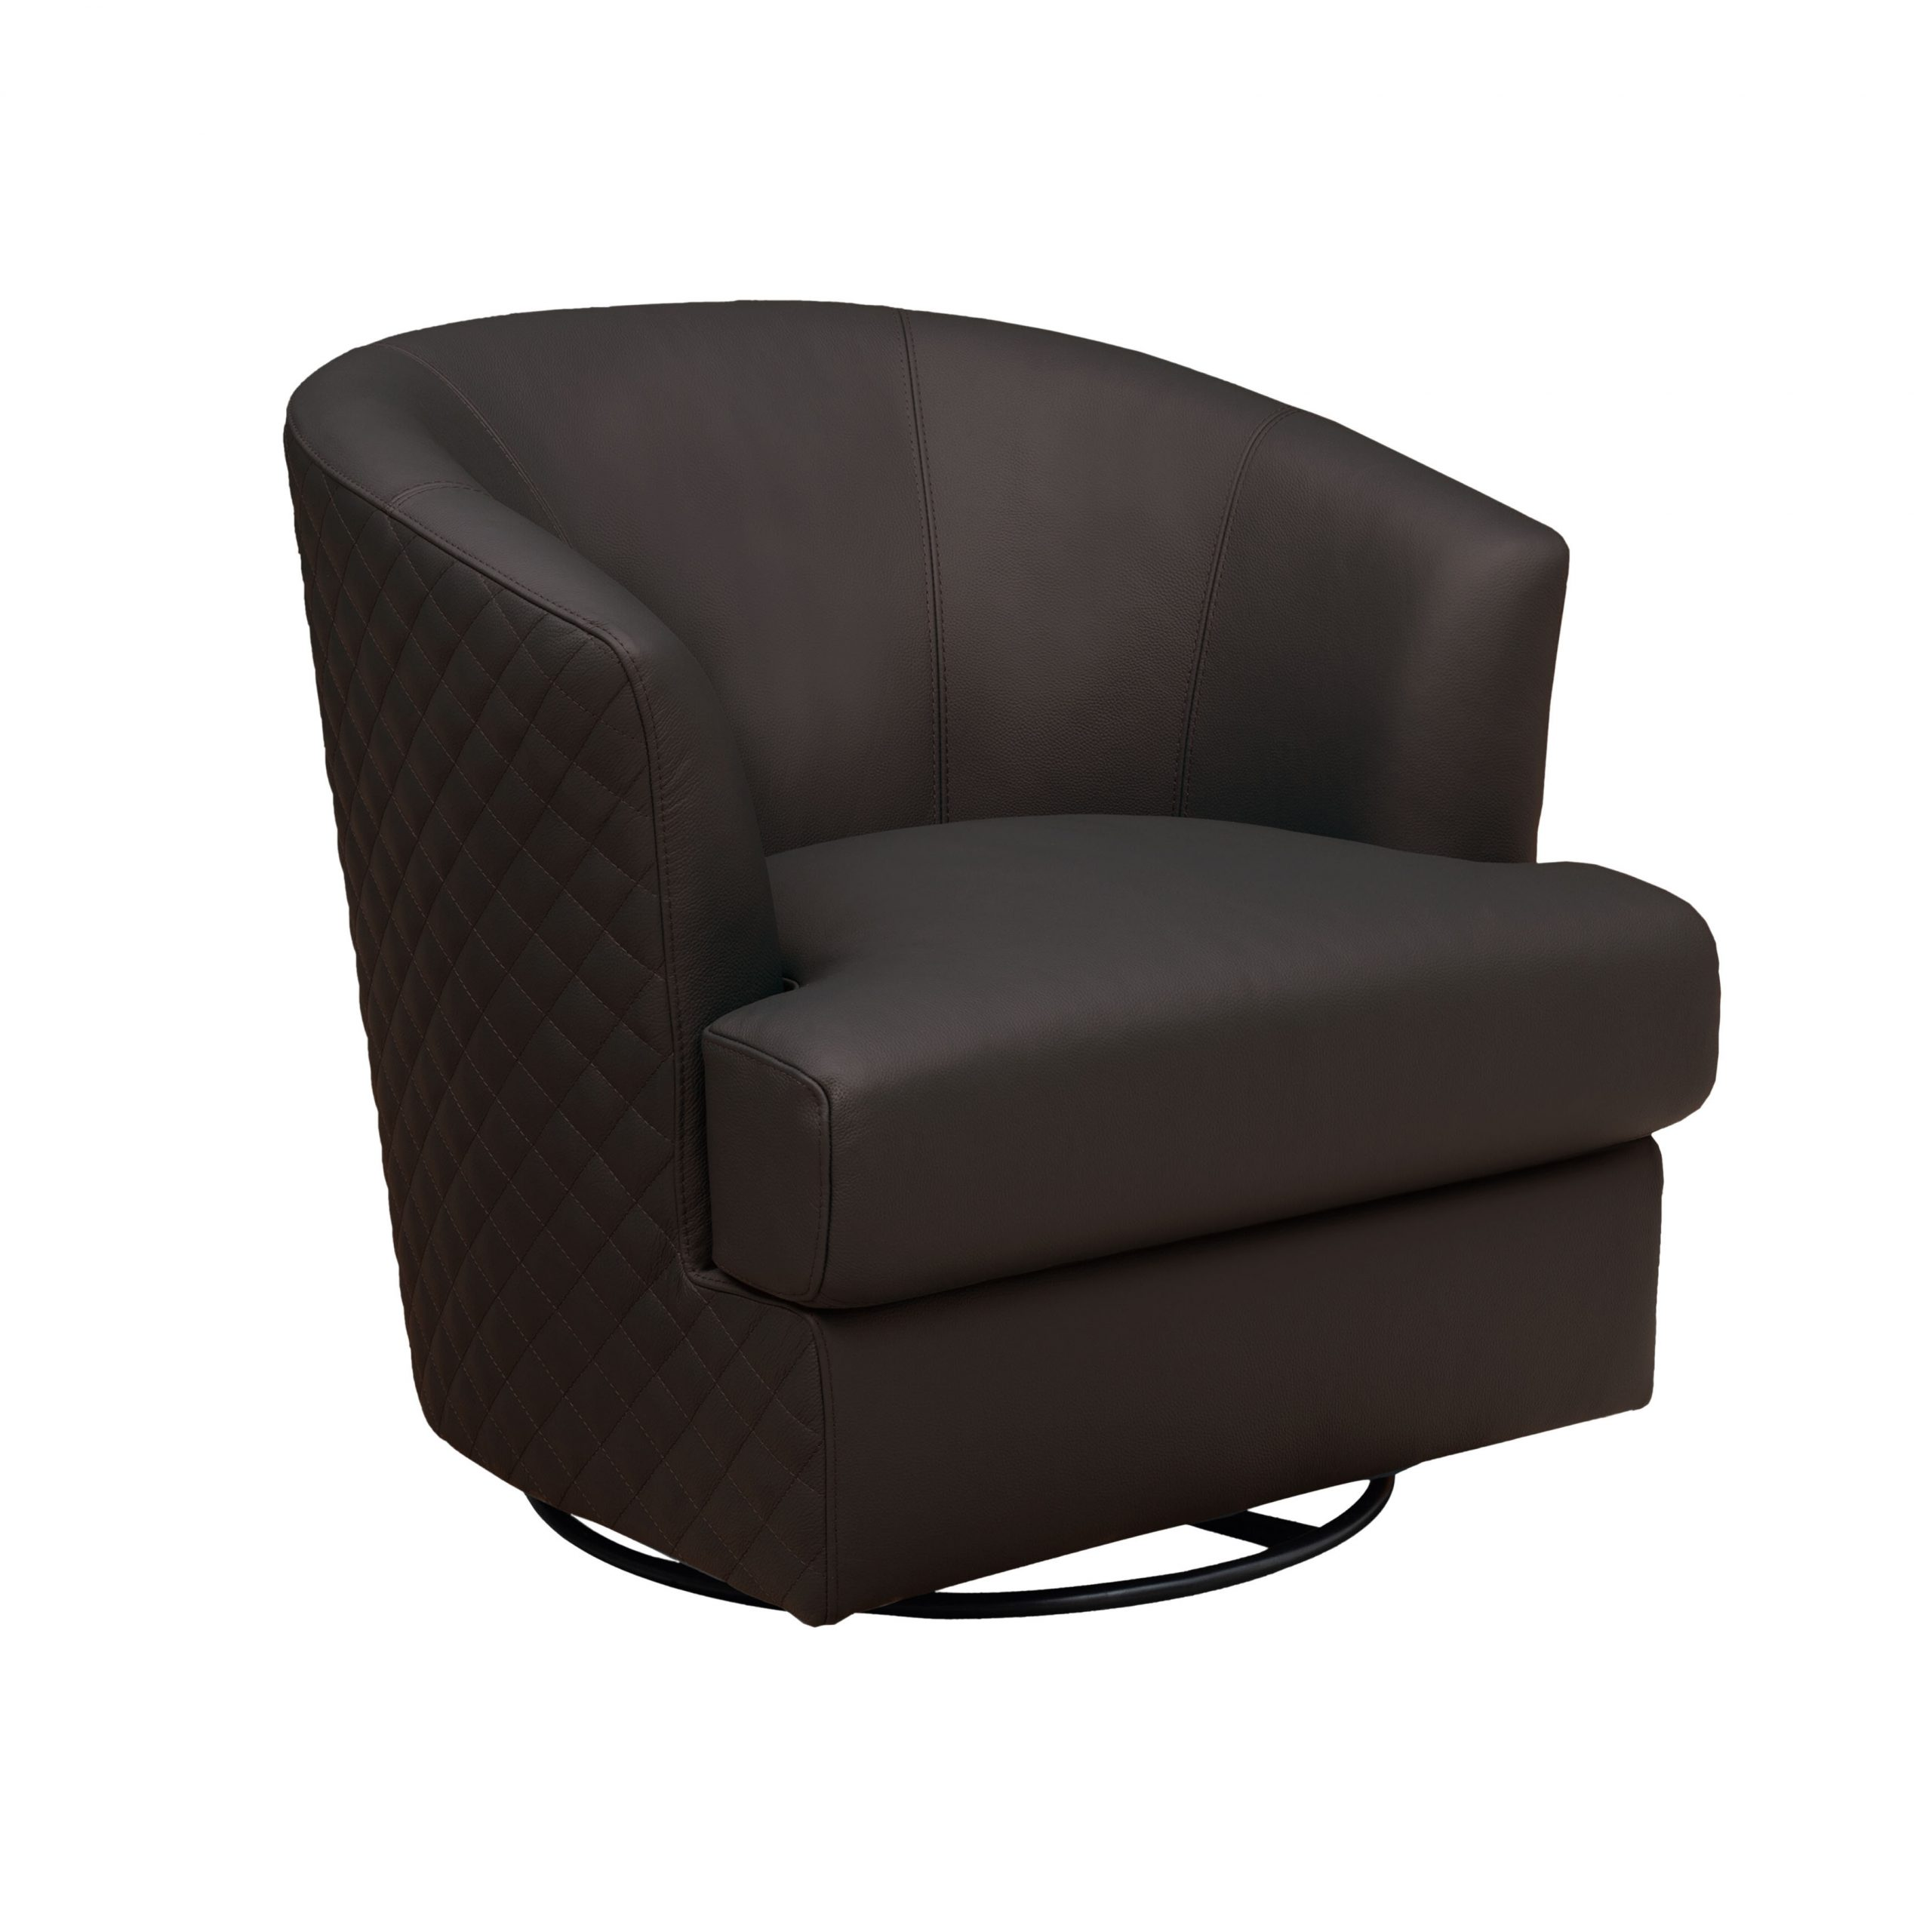 """Dely 32"""" W Leather Match Swivel Barrel Chair Inside Most Up To Date Molinari Swivel Barrel Chairs (View 14 of 20)"""